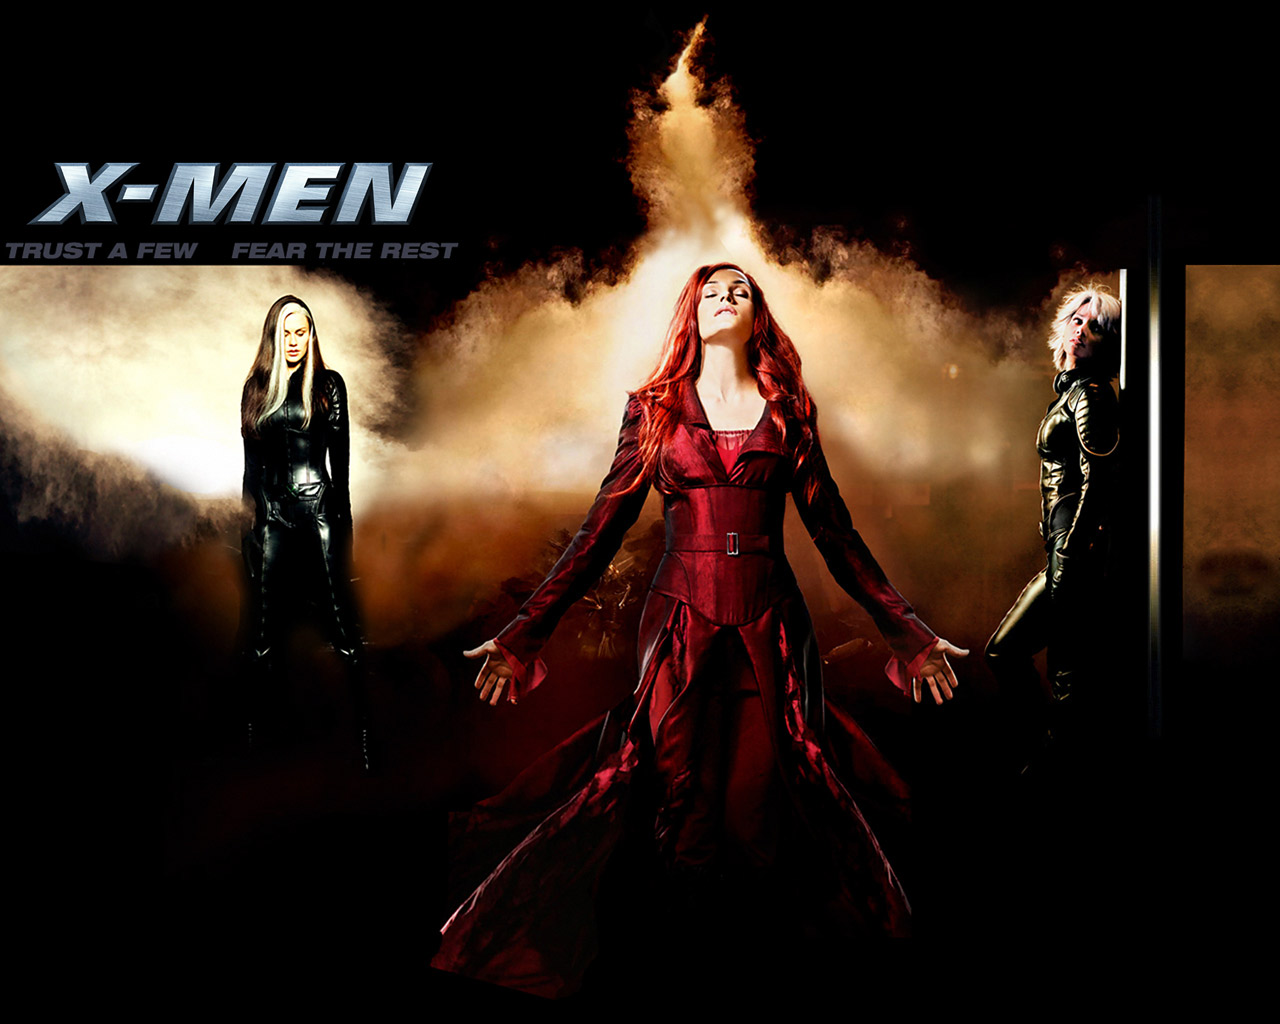 http://2.bp.blogspot.com/-miJMUpqDe60/TaWpMffjT9I/AAAAAAAAAOY/3dCdP0Jo5w4/s1600/X-Men_-_The_Movie%252C_2000%252C_Famke_Janssen.jpg